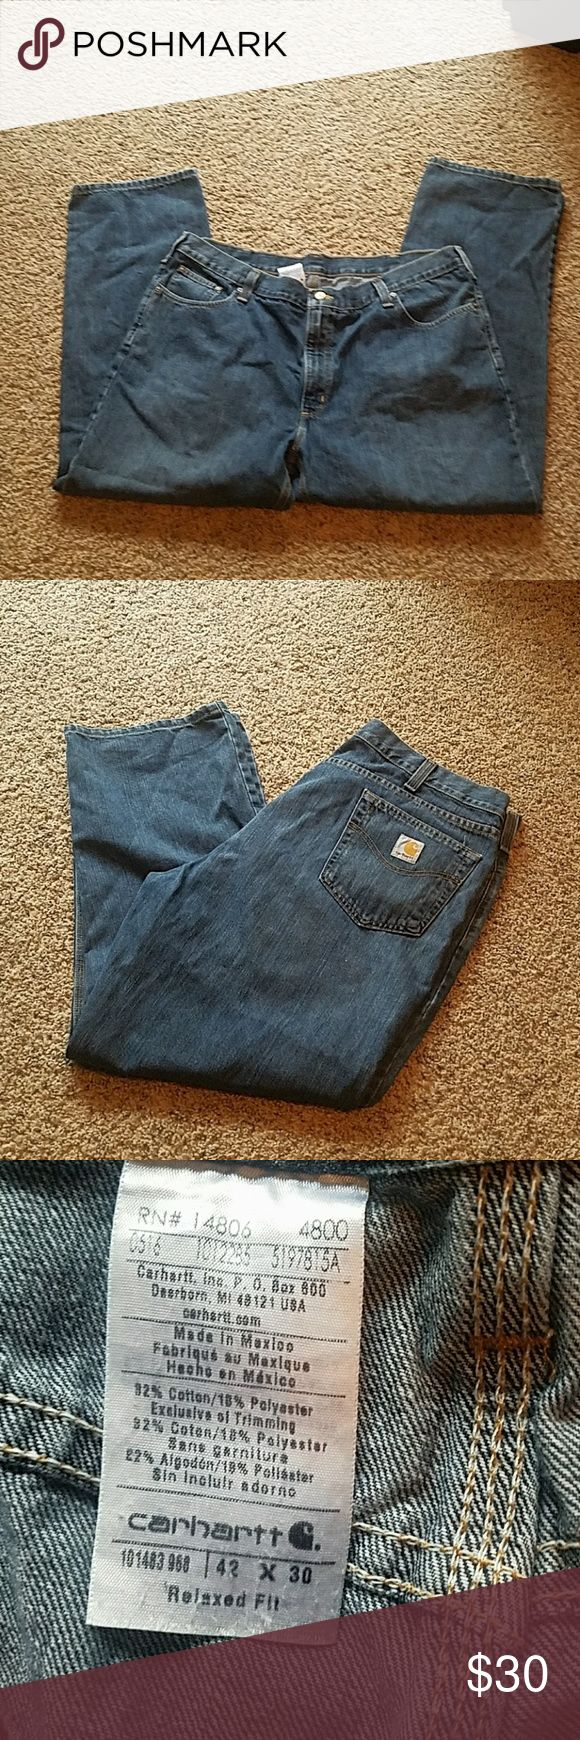 NWOT CARHARTT JEANS NWOT MEN'S CARHARTT jeans. SIZE 42X30. Perfect condition. Boot cut. Make an offer! Smoke free home! Carhartt Jeans Bootcut